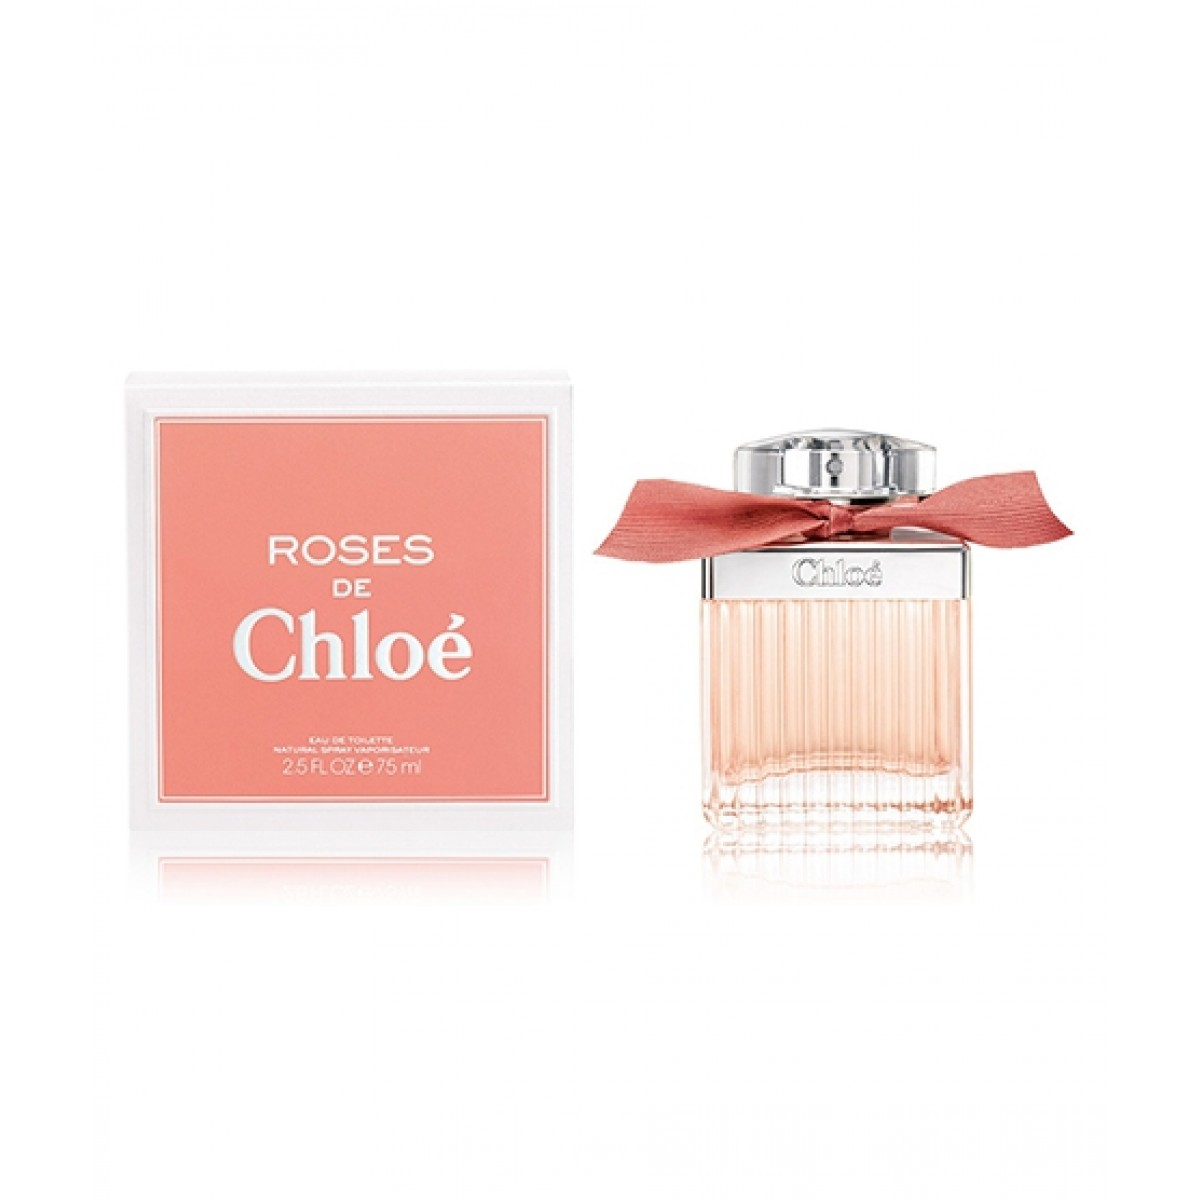 Chloe Eau Chloe Roses De Chloé Eau De Toilette For Women 75ml